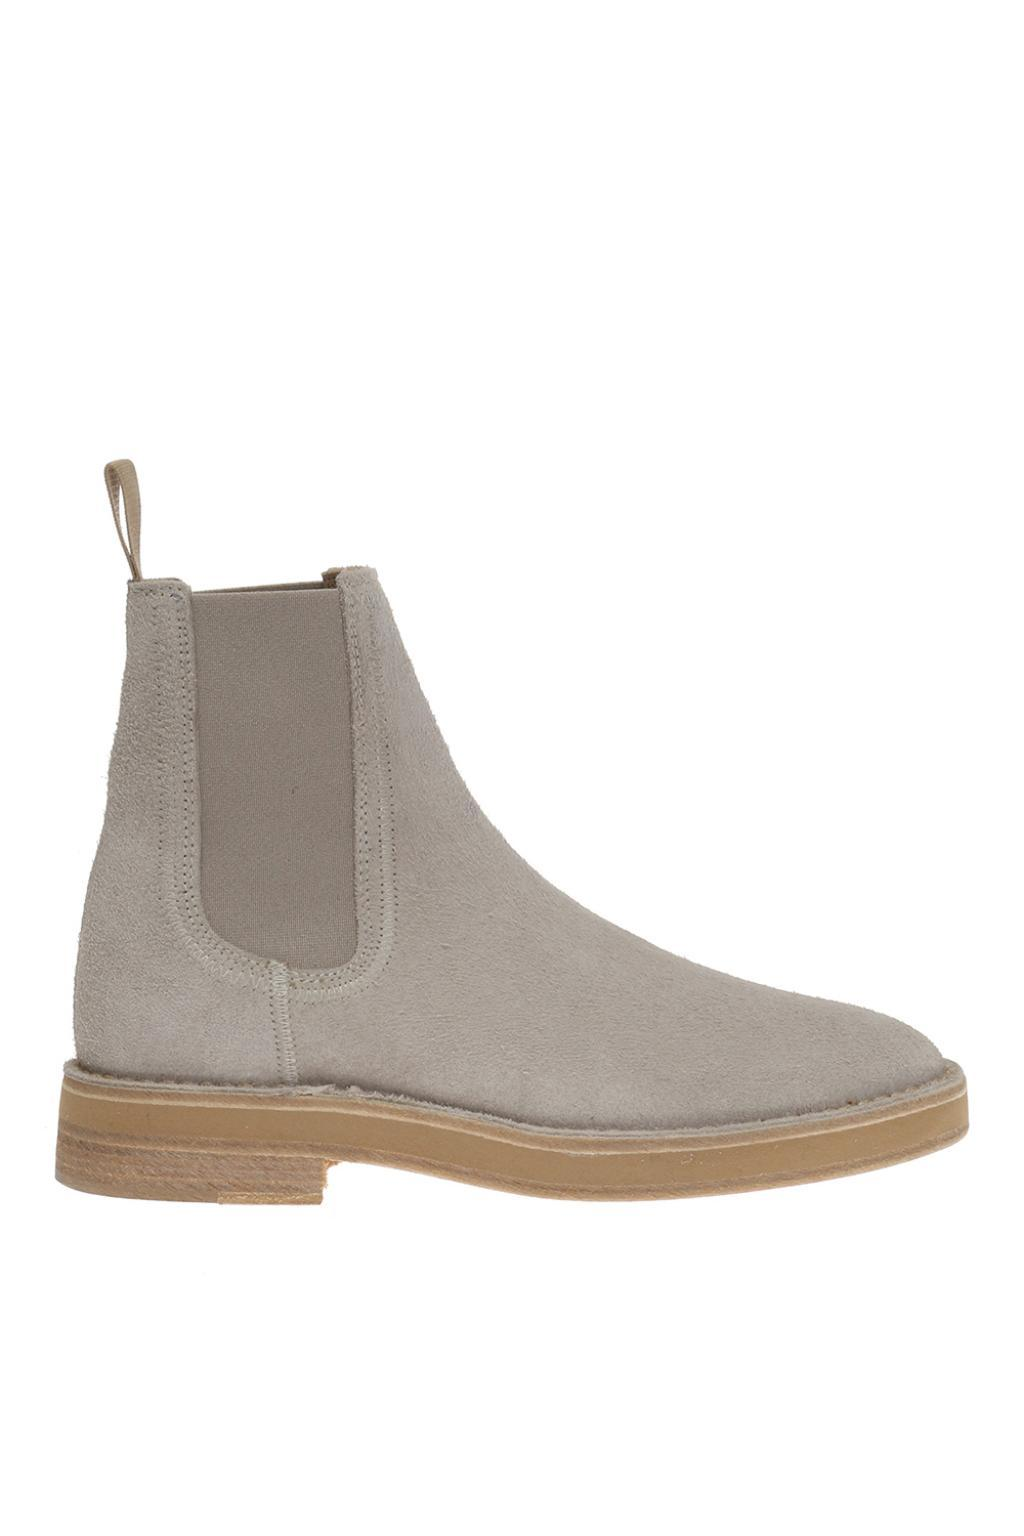 1fd7ec0296d01 Lyst - Yeezy Suede Chelsea Boots for Men - Save 59%